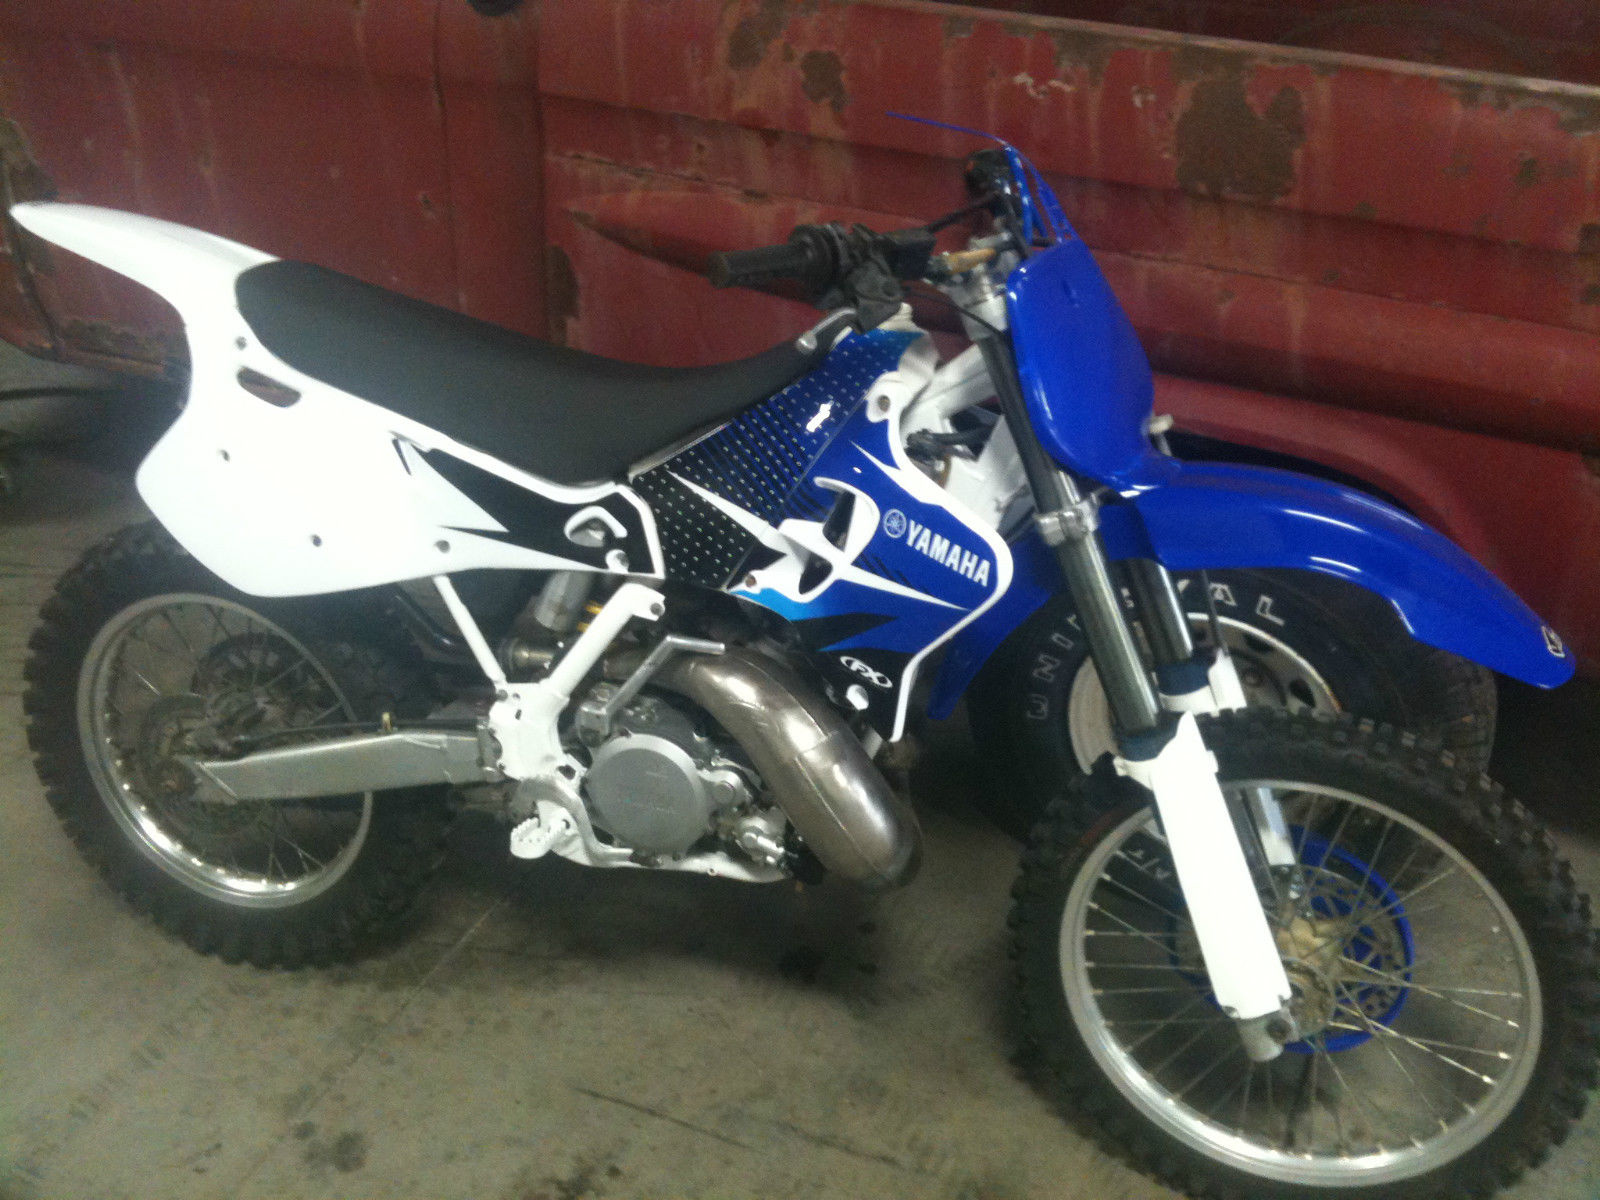 1997 Yamaha WR 250 | Picture 129433